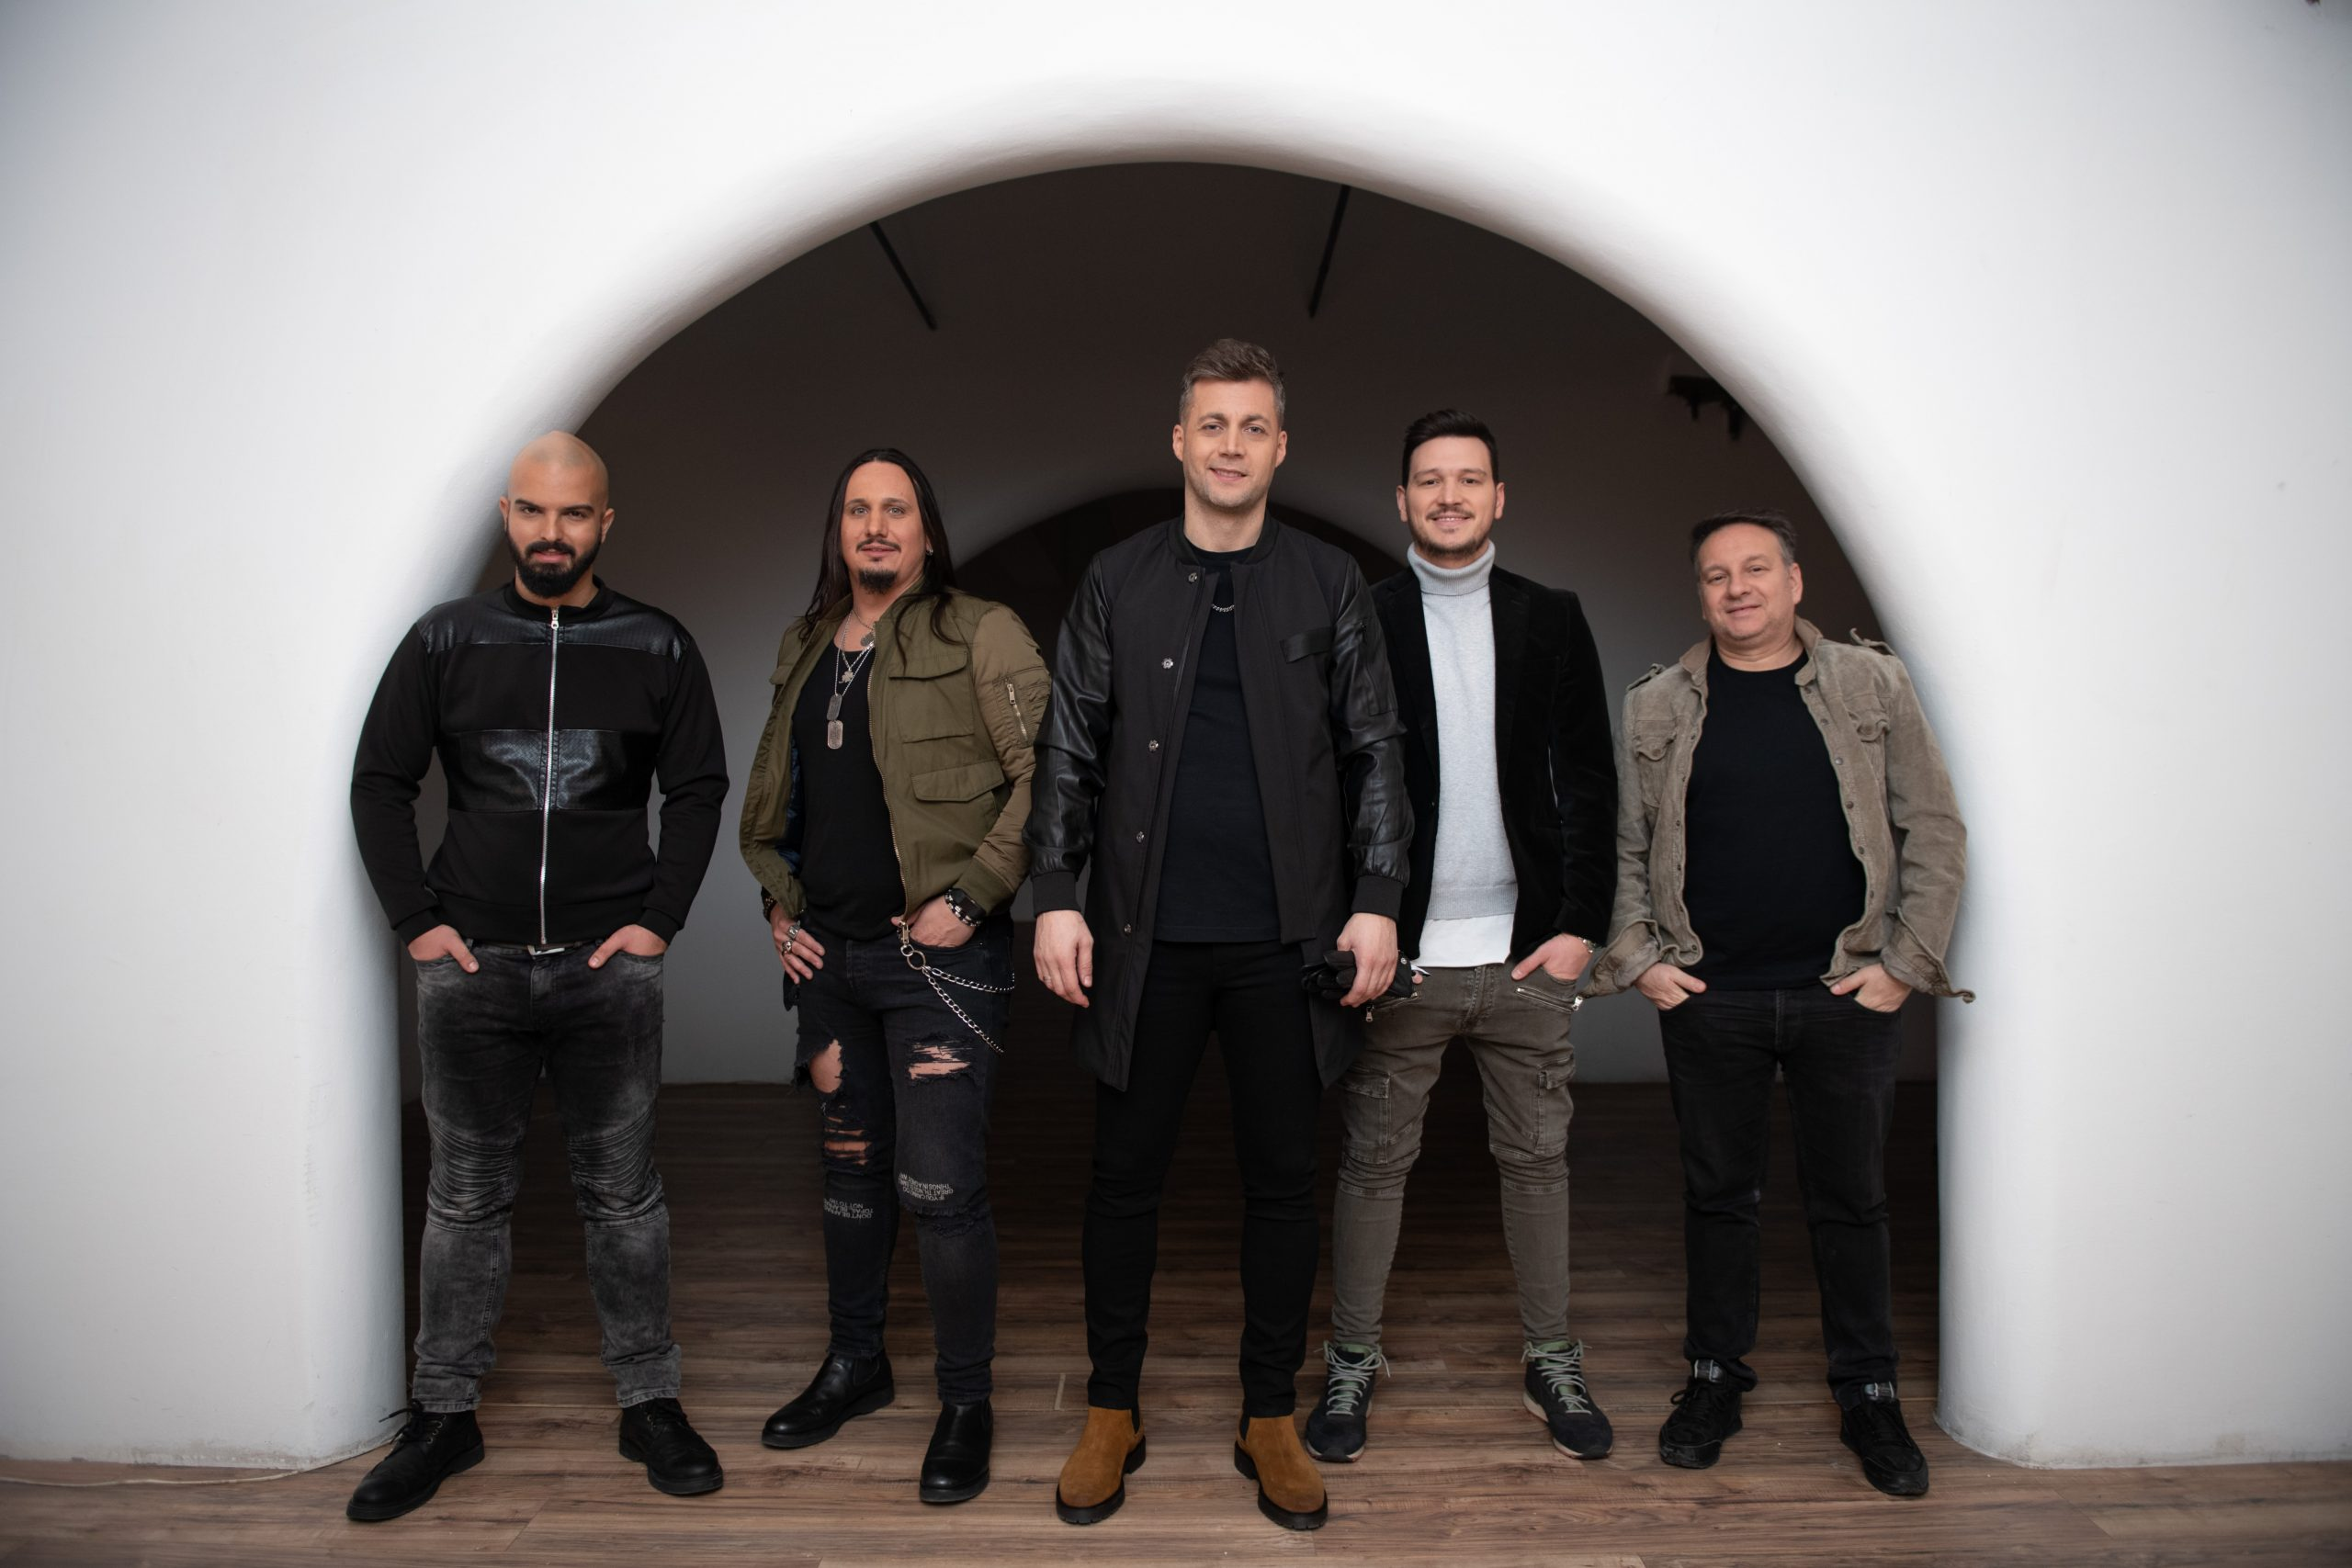 Lexington Band ima novu pjesmu